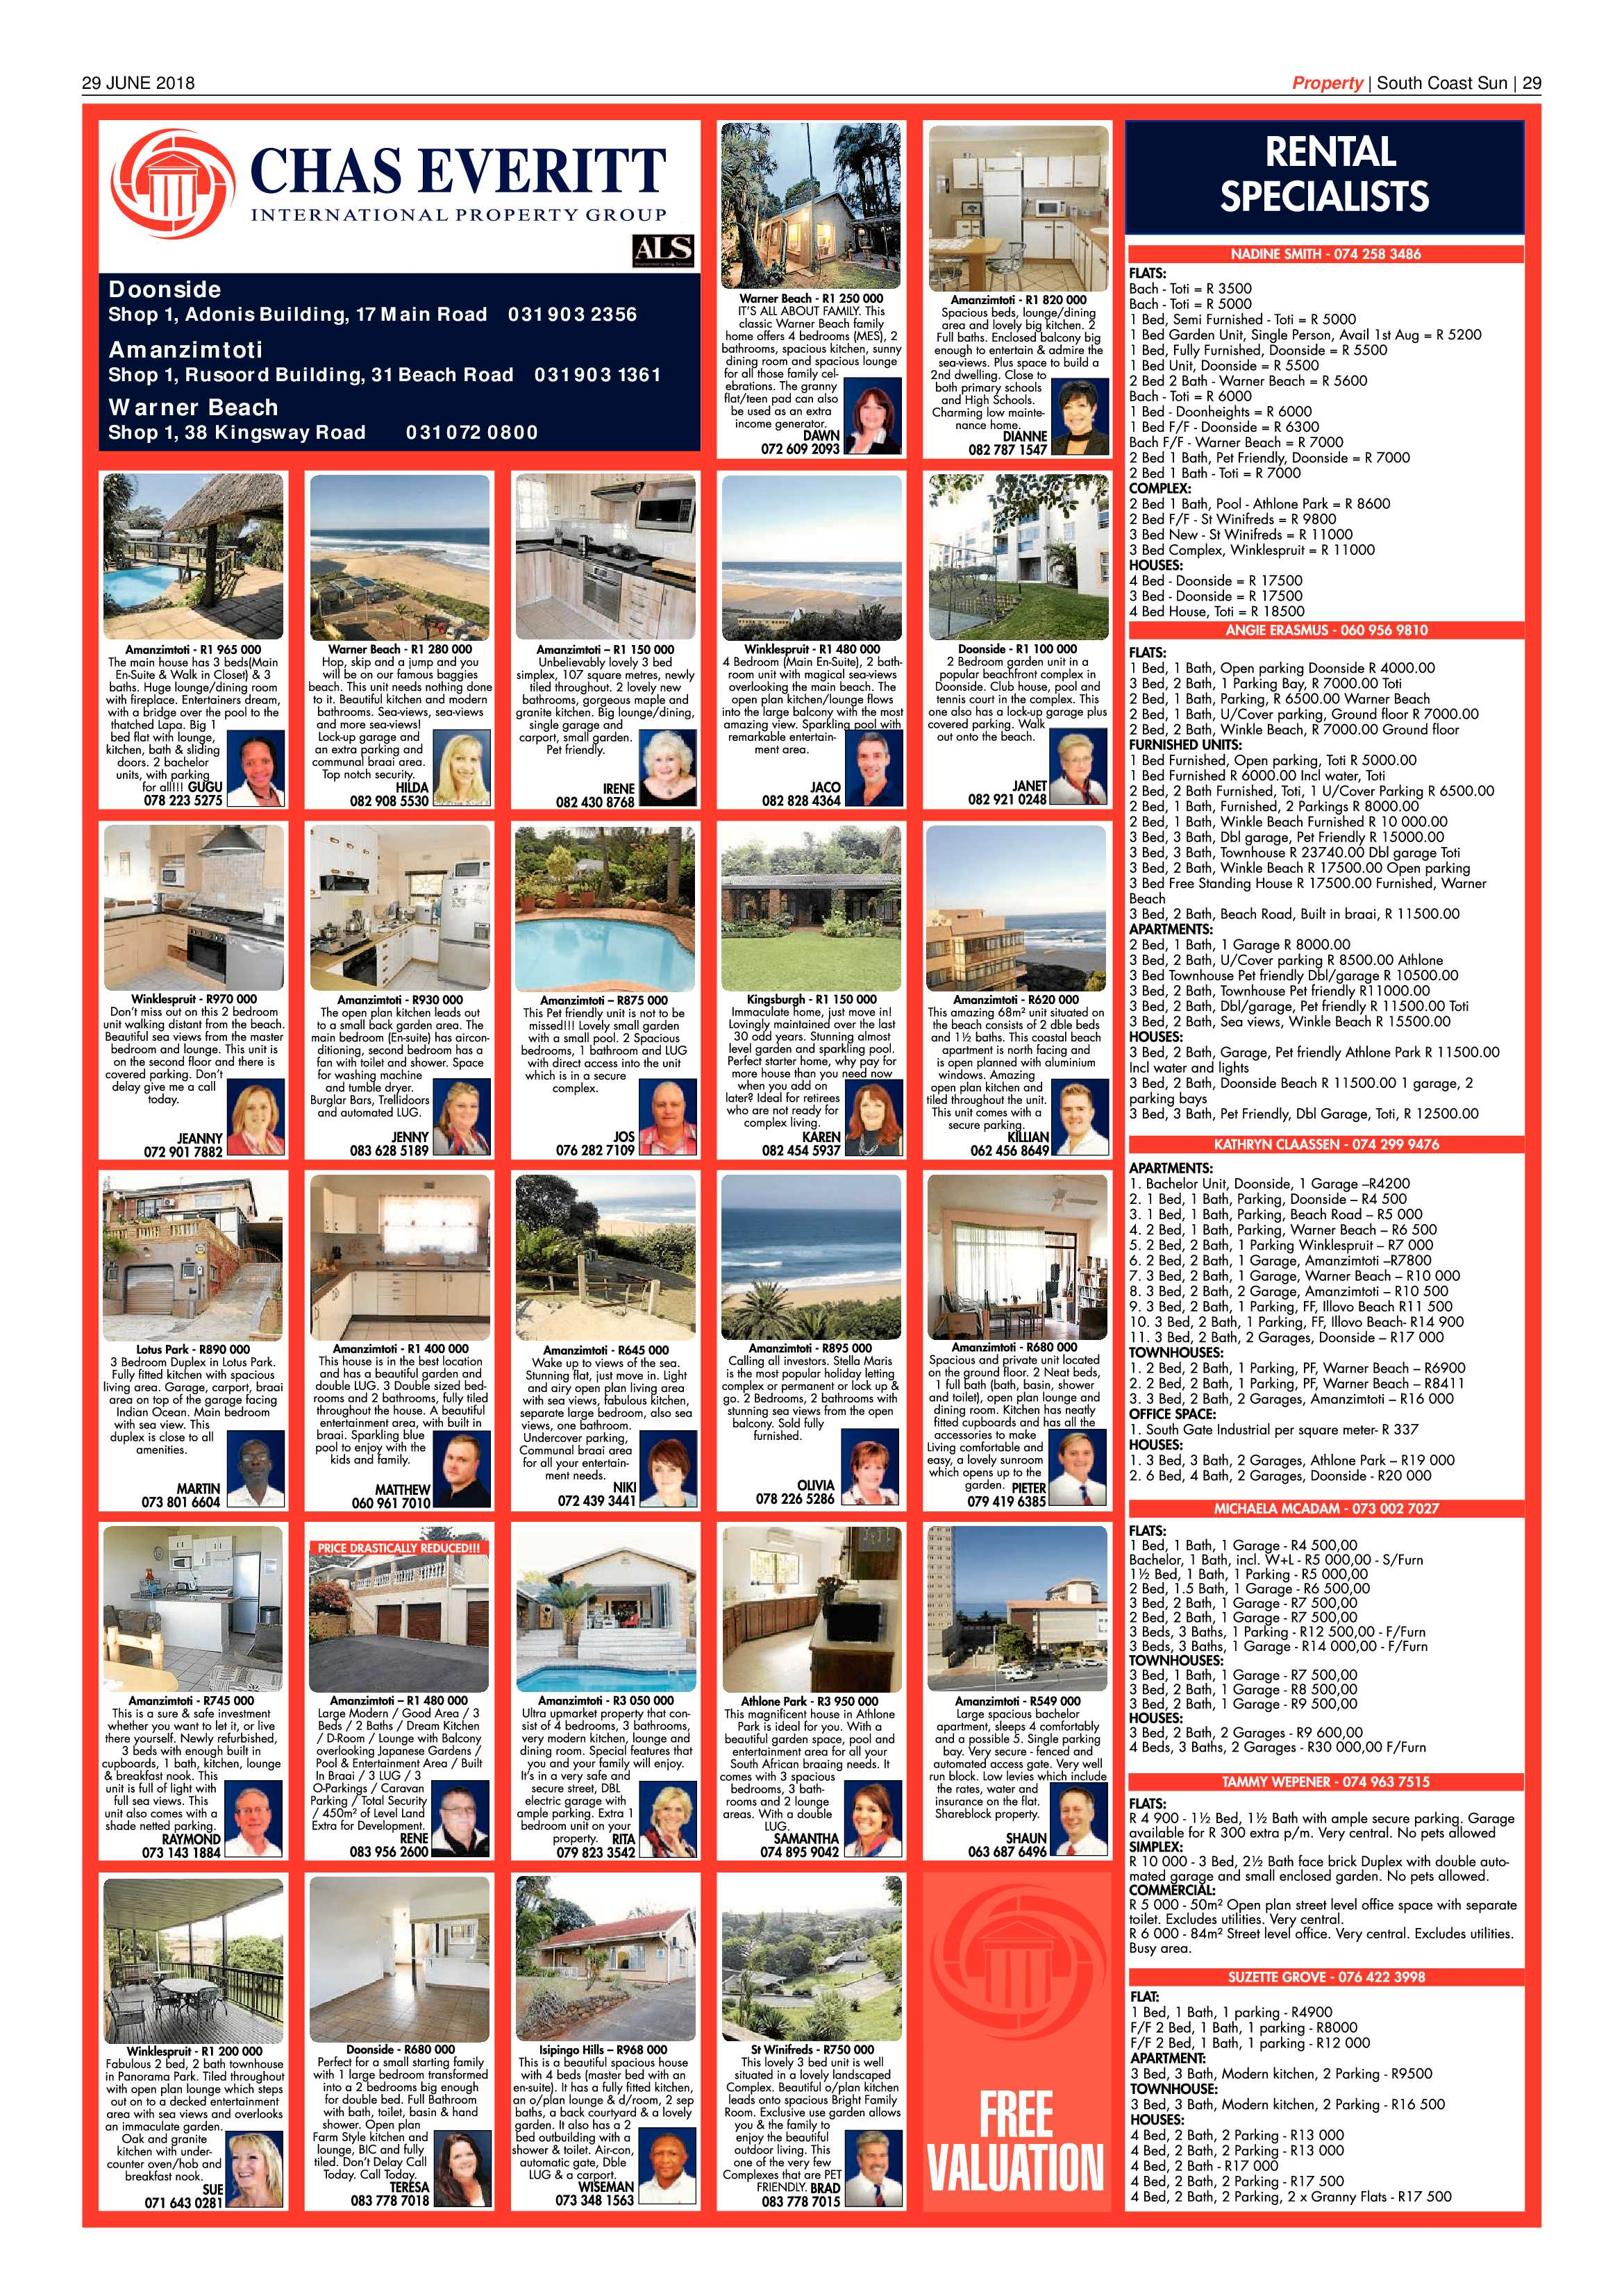 29-june-2018-epapers-page-29